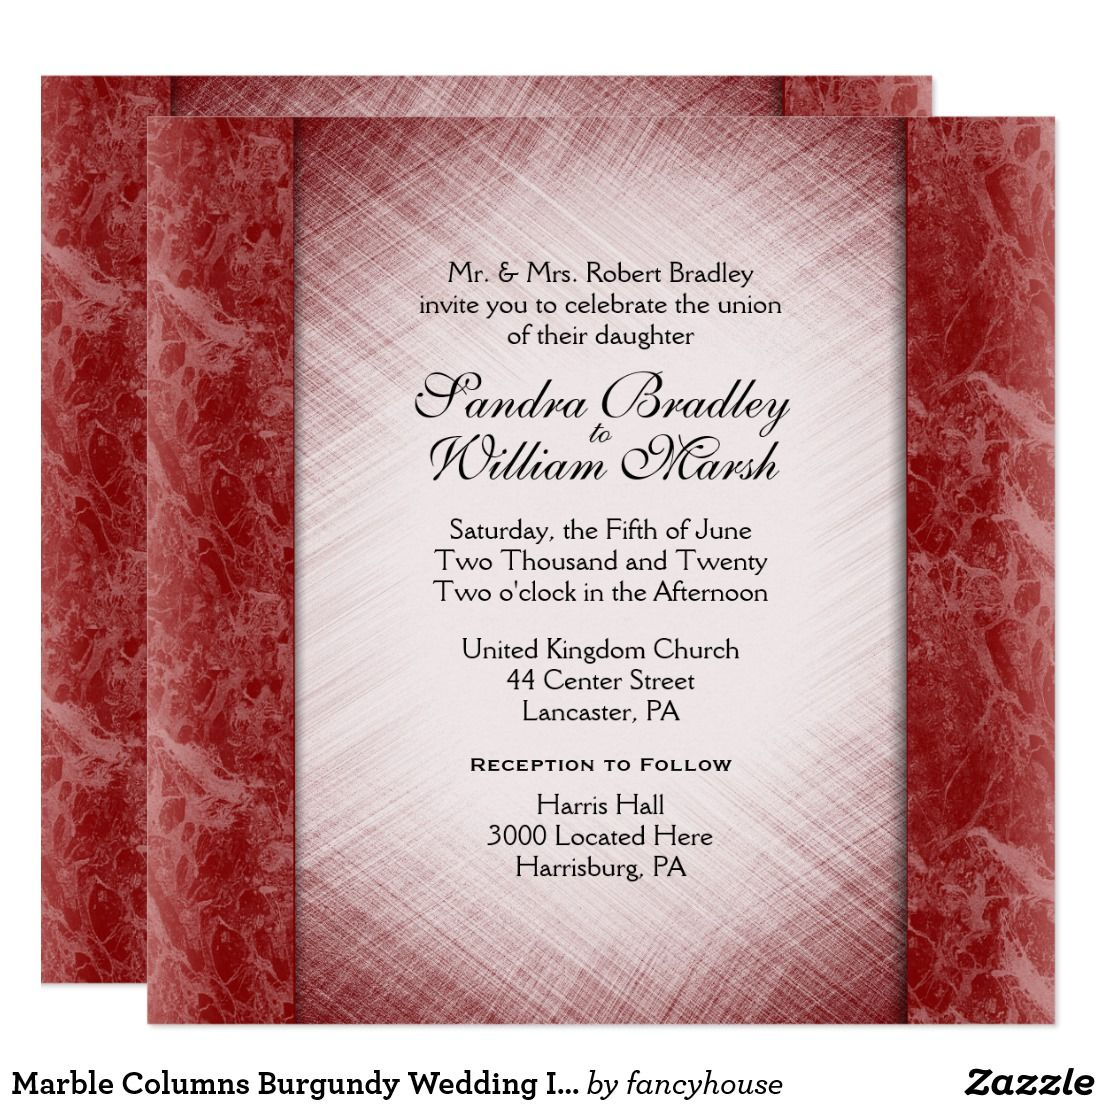 Marble Columns Burgundy Wedding Invitations